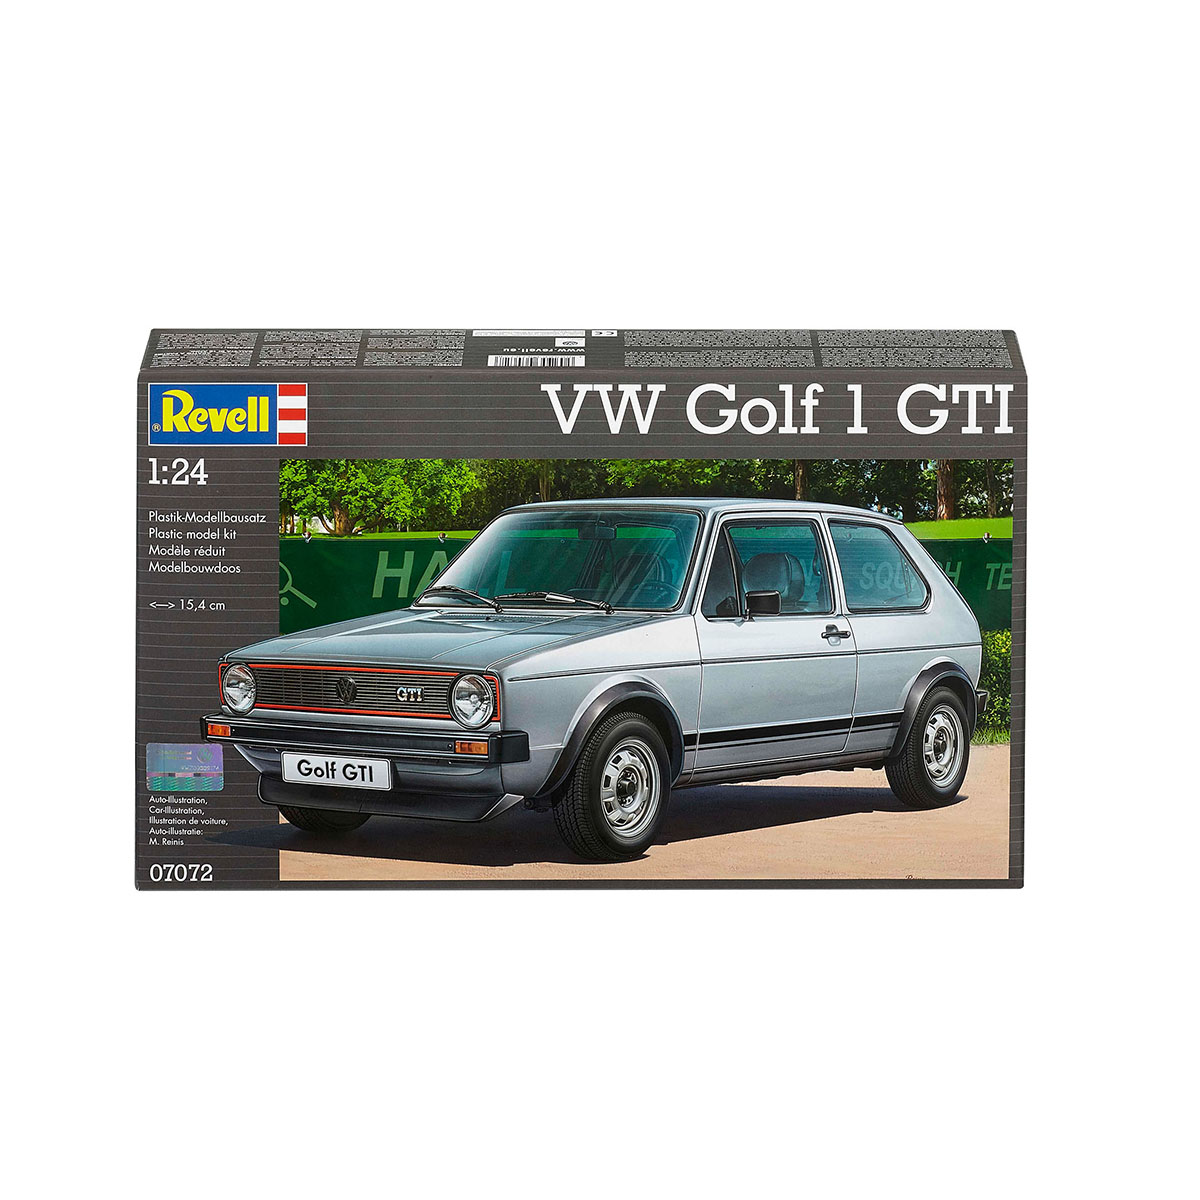 Maquette voiture - VW Golf 1 GTI